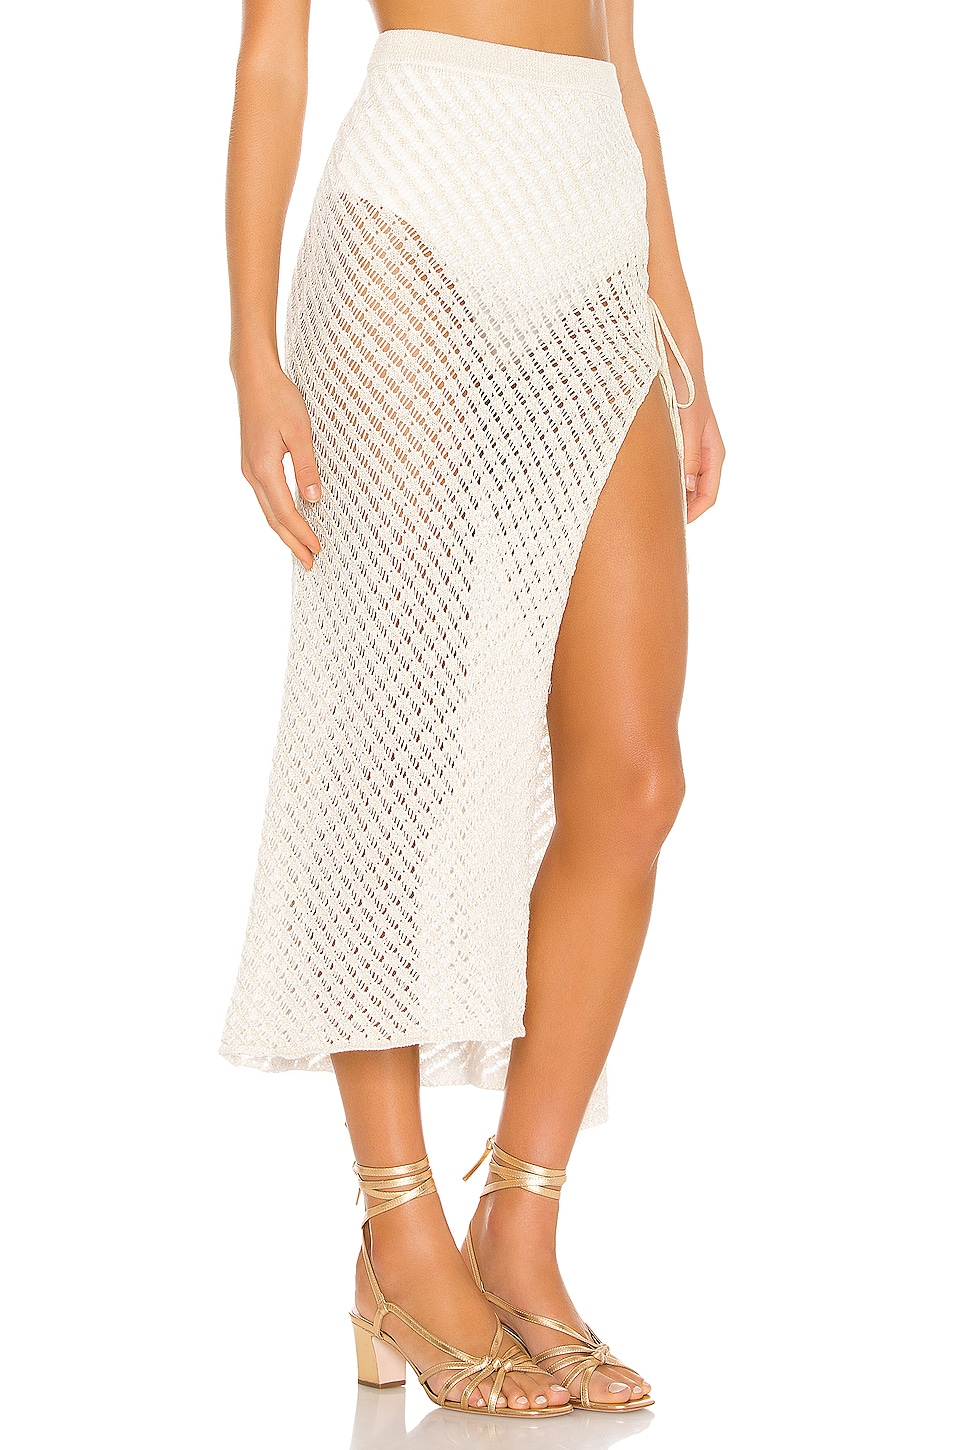 Offshore Midi Skirt, view 2, click to view large image.